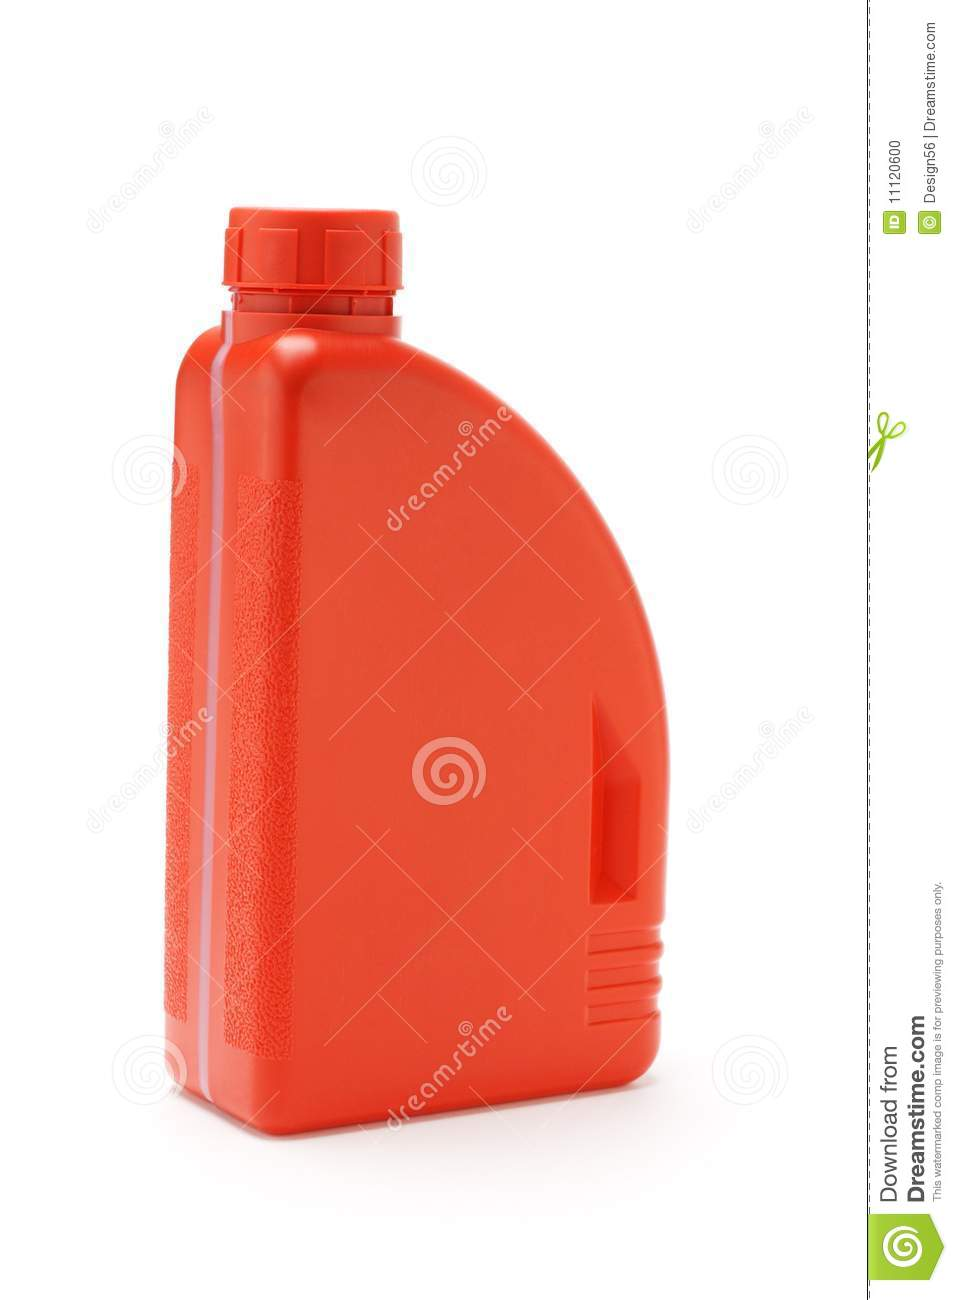 Motor Oil Container Stock Photo Image 11120600